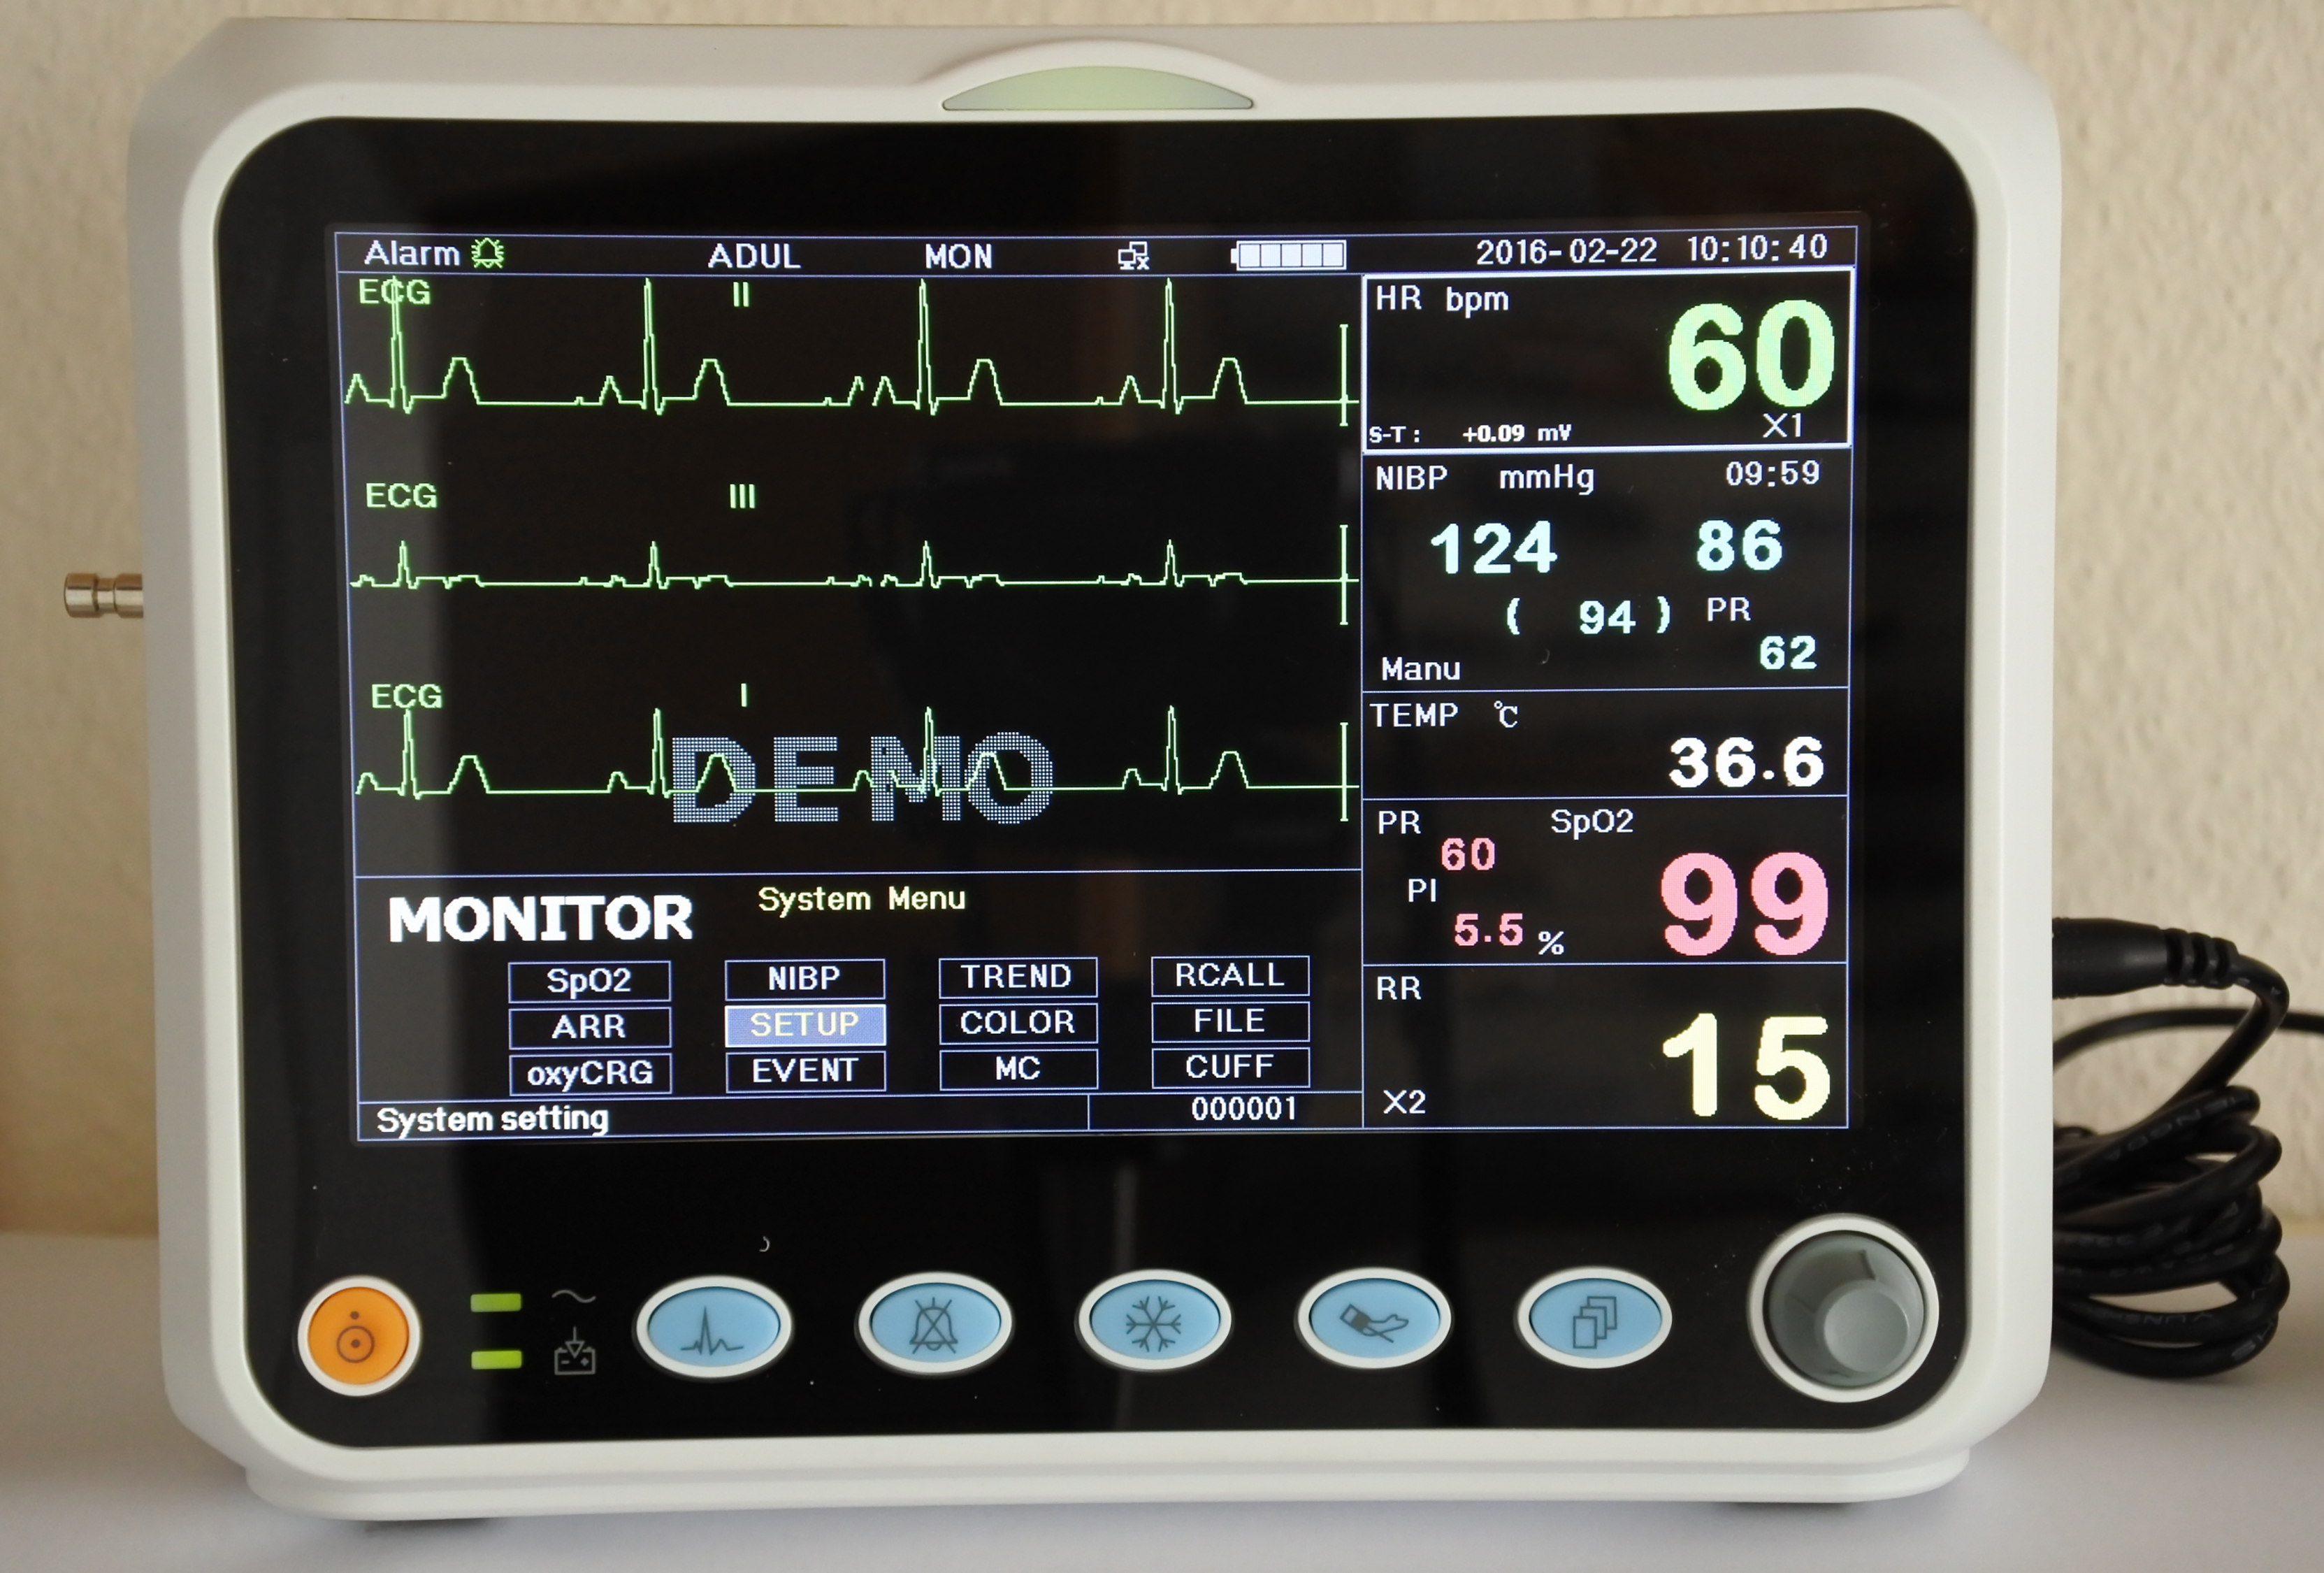 patient monitoring systems ECG, SPO2, NIBP, hearth rate, respiratory